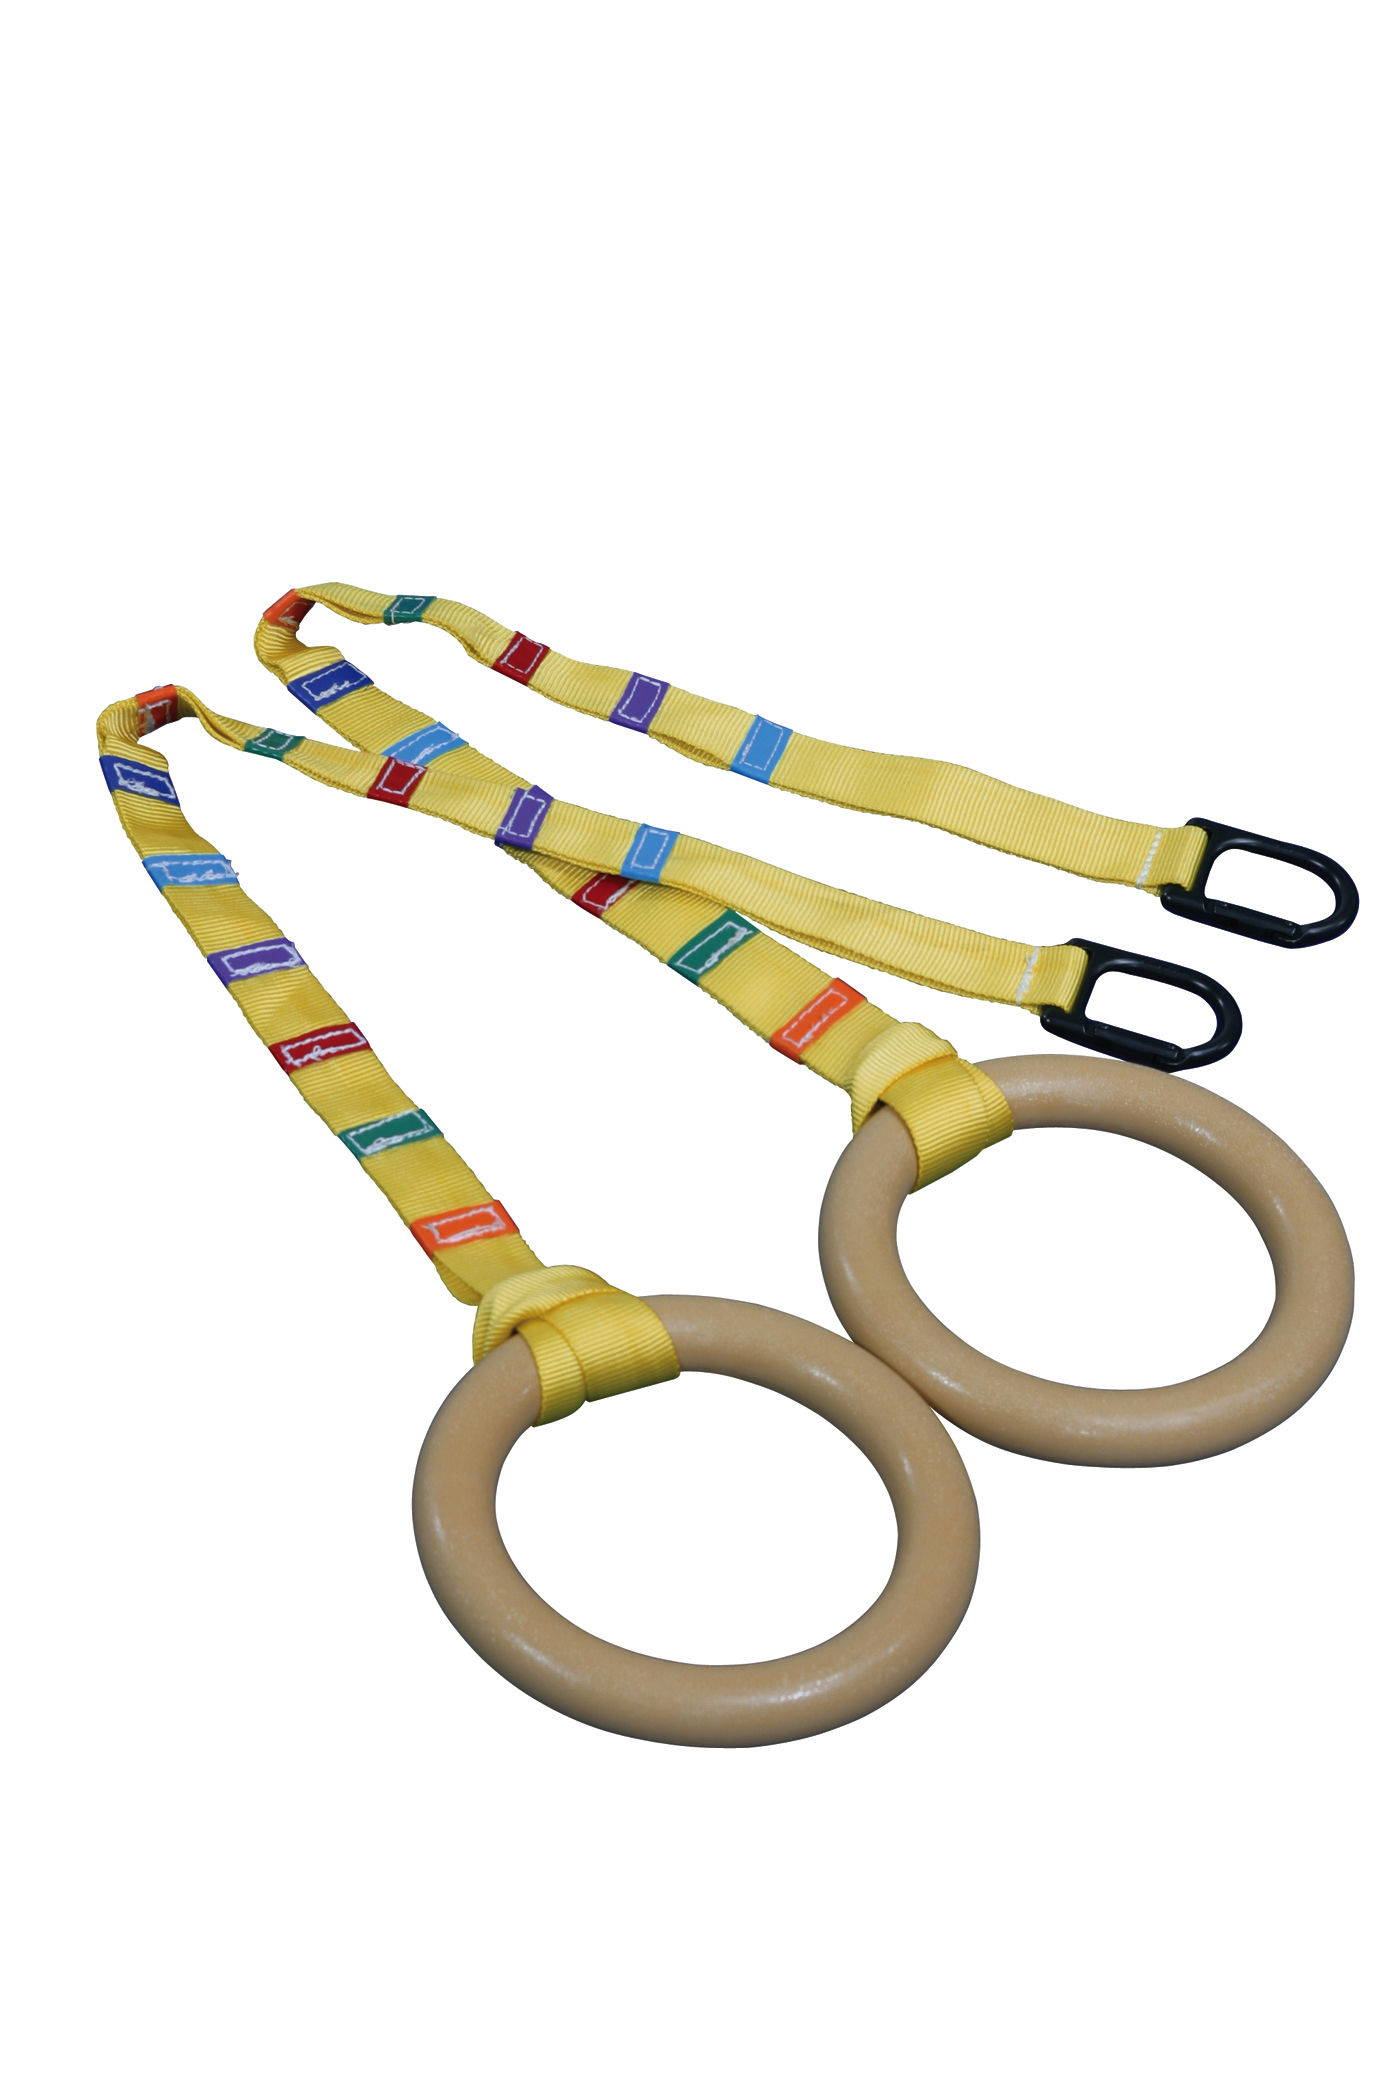 Gymnastics Rings and Straps